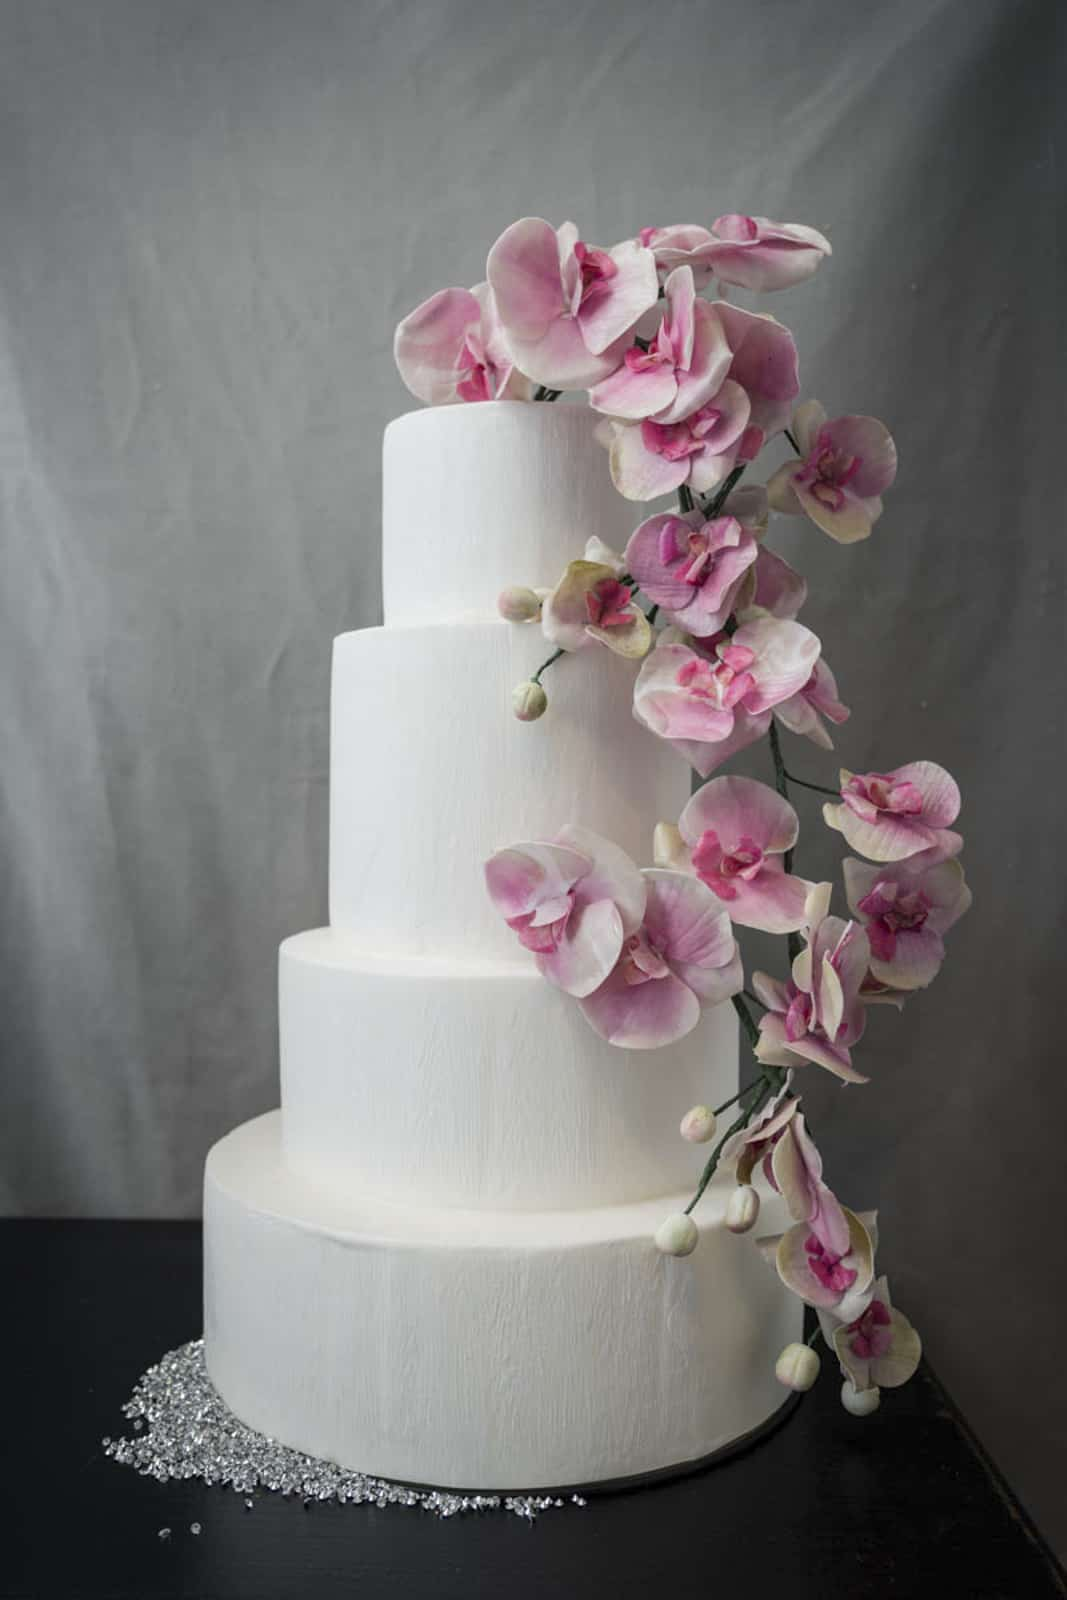 Tuscan Wedding Cakes / Pink Orchid Cake